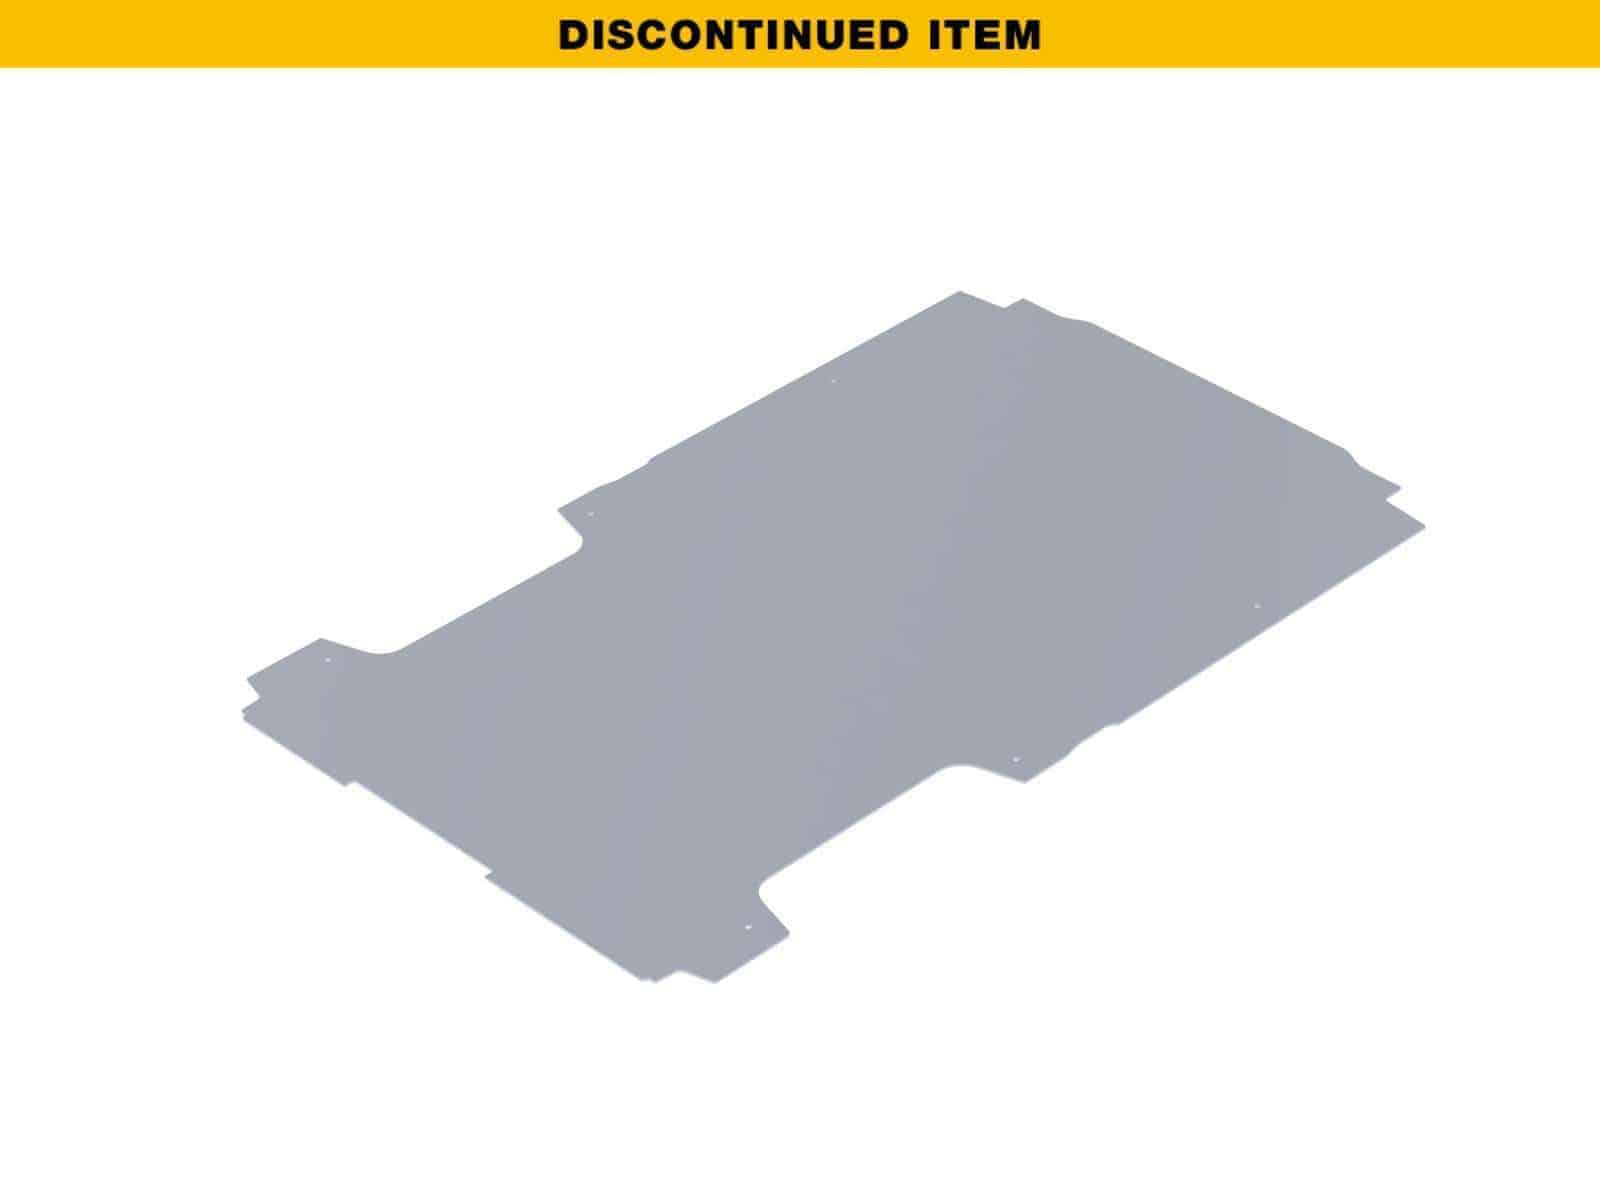 HD-Ultragrip-Van-Floor-Liner-ProMaster-136-6521-discontinued